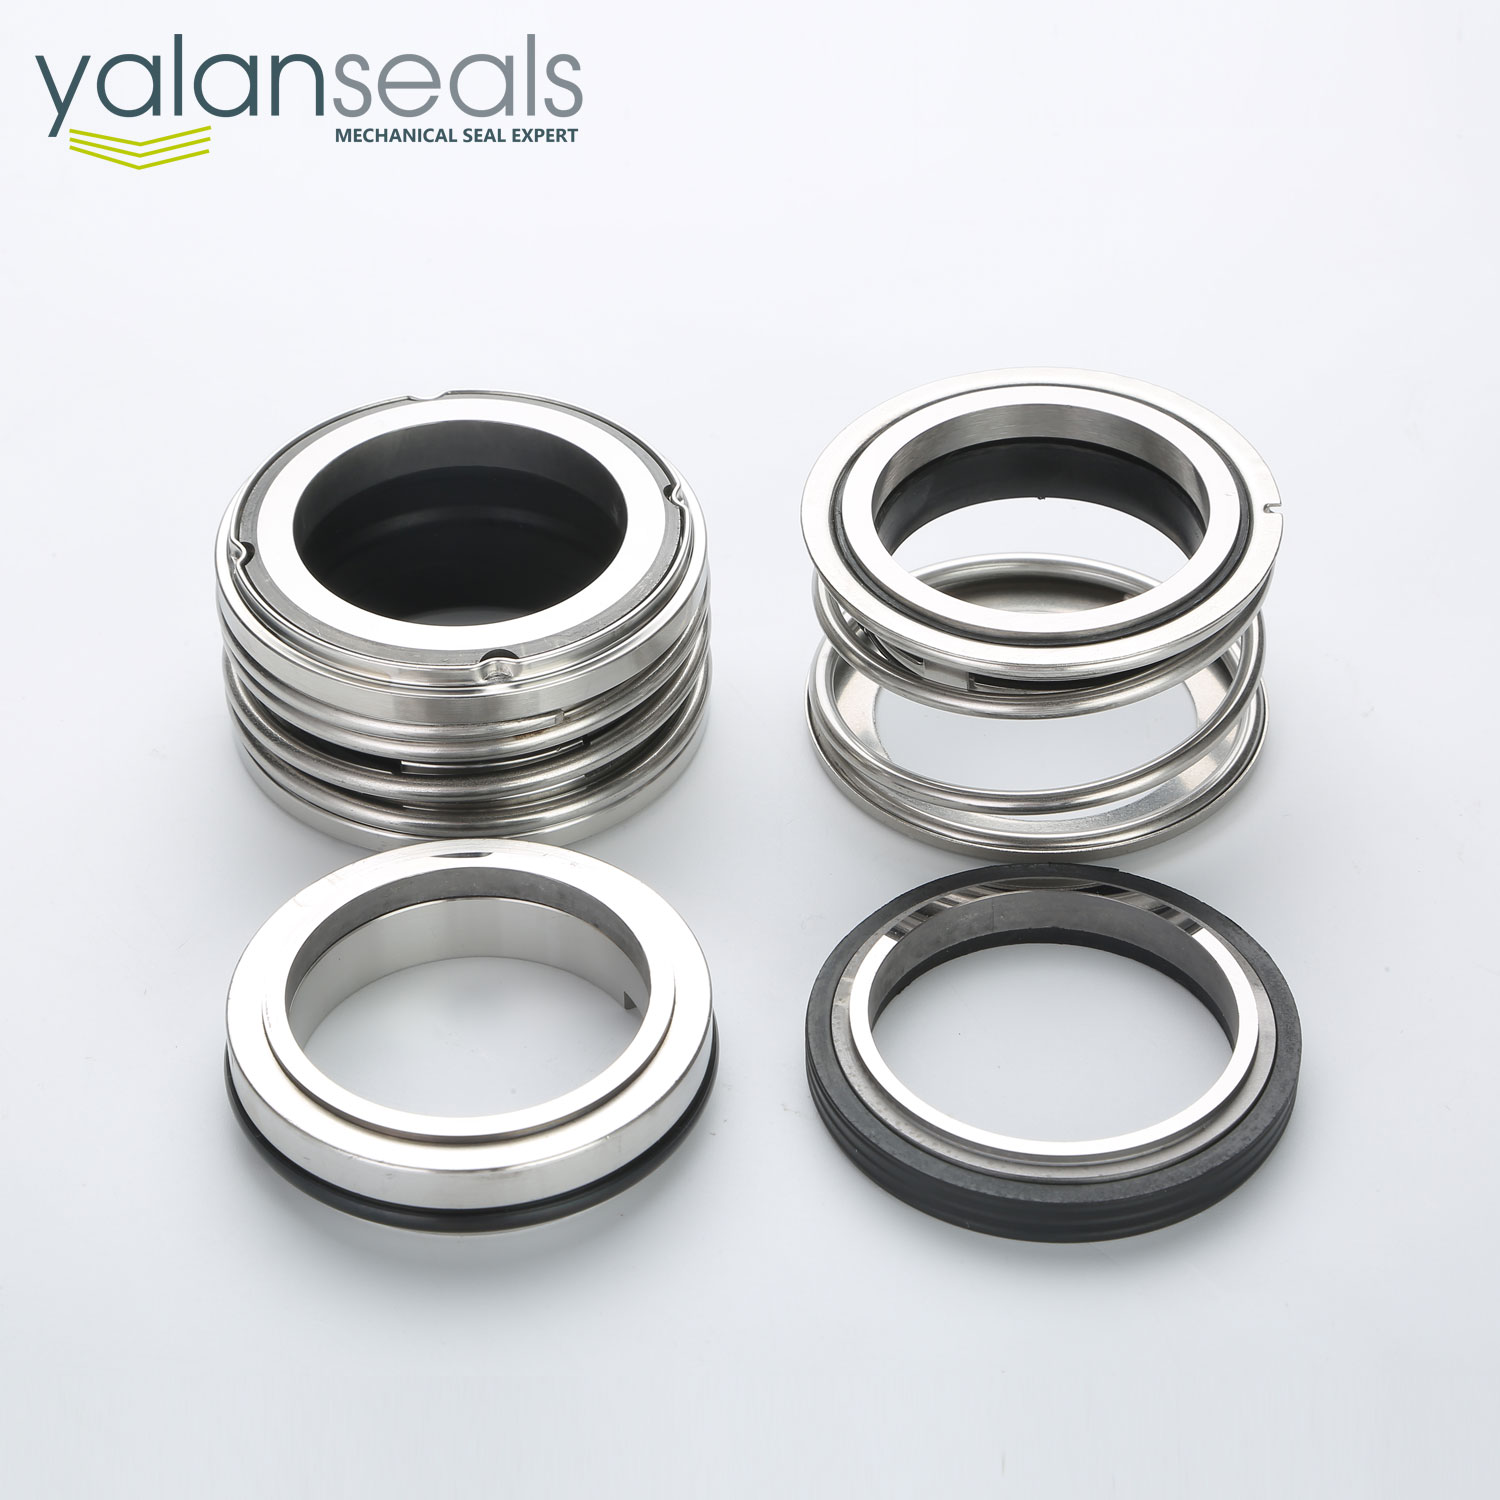 YALAN 128 Rubber Bellow Mechanical Seal works with YL110 Seal as Double Seal